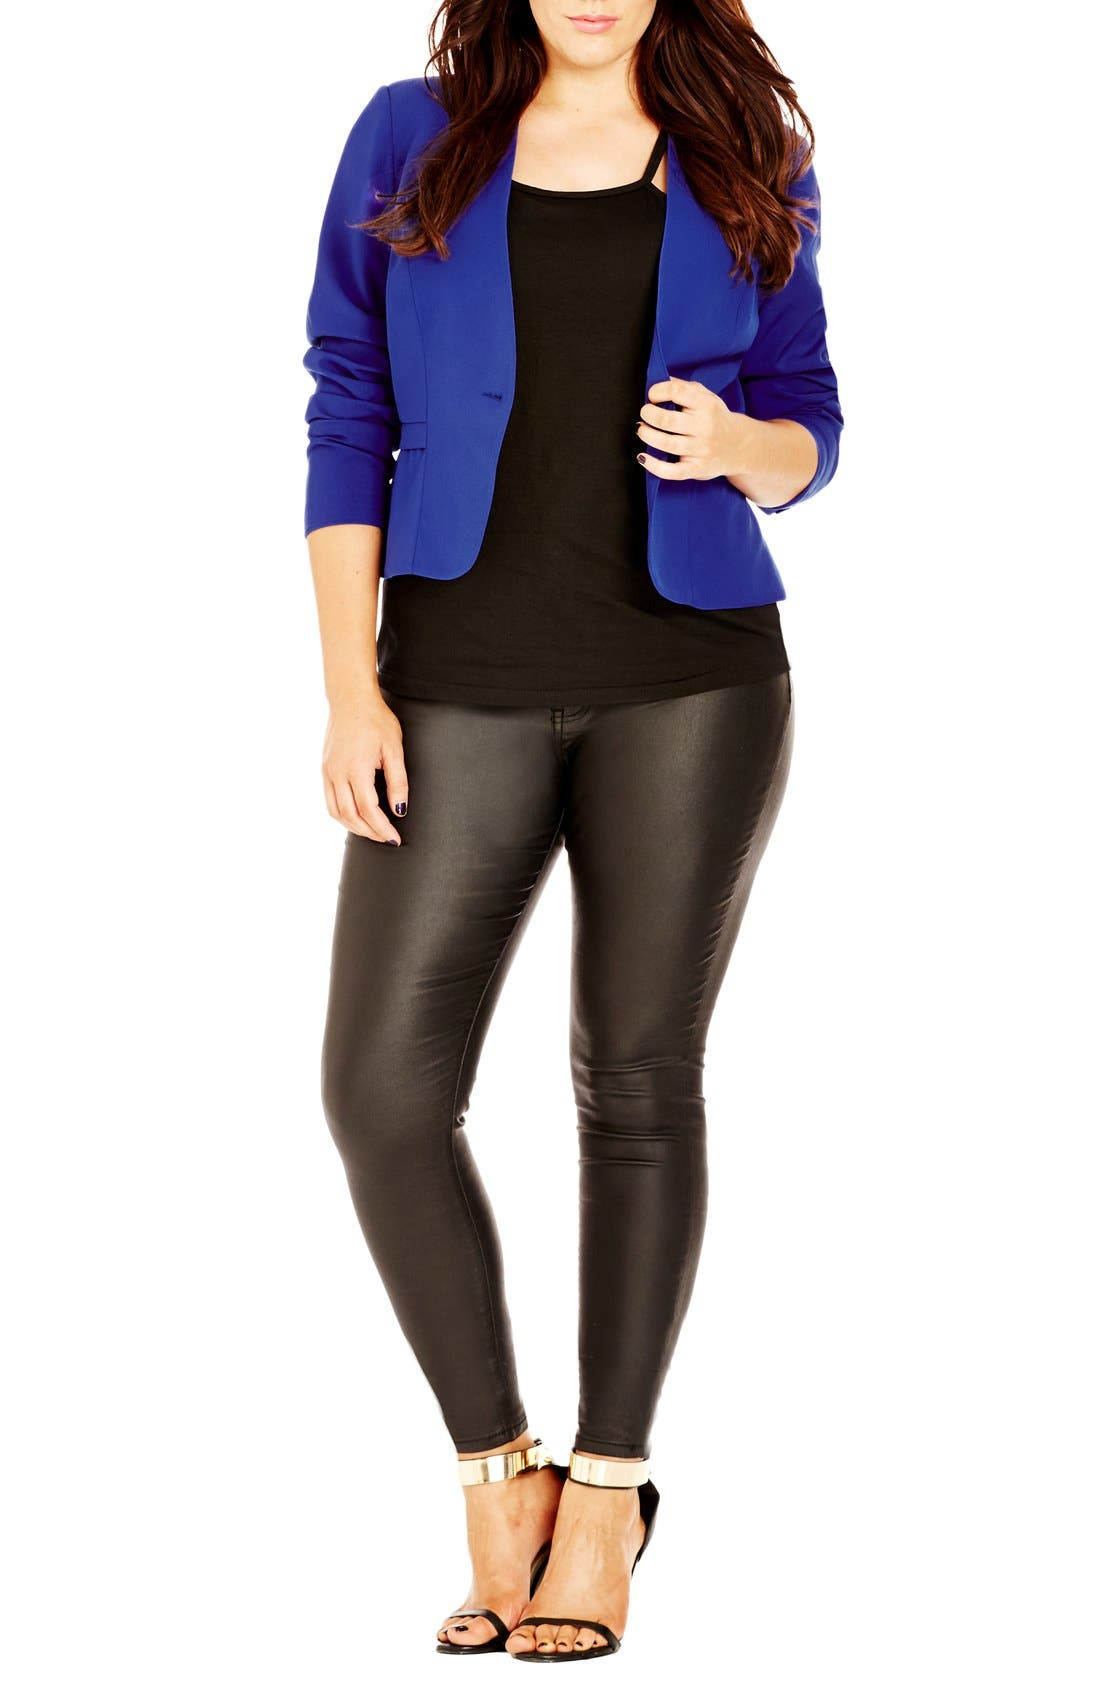 Alternate Image 1 Selected - City Chic 'Cheeky' Peplum Jacket (Plus Size)